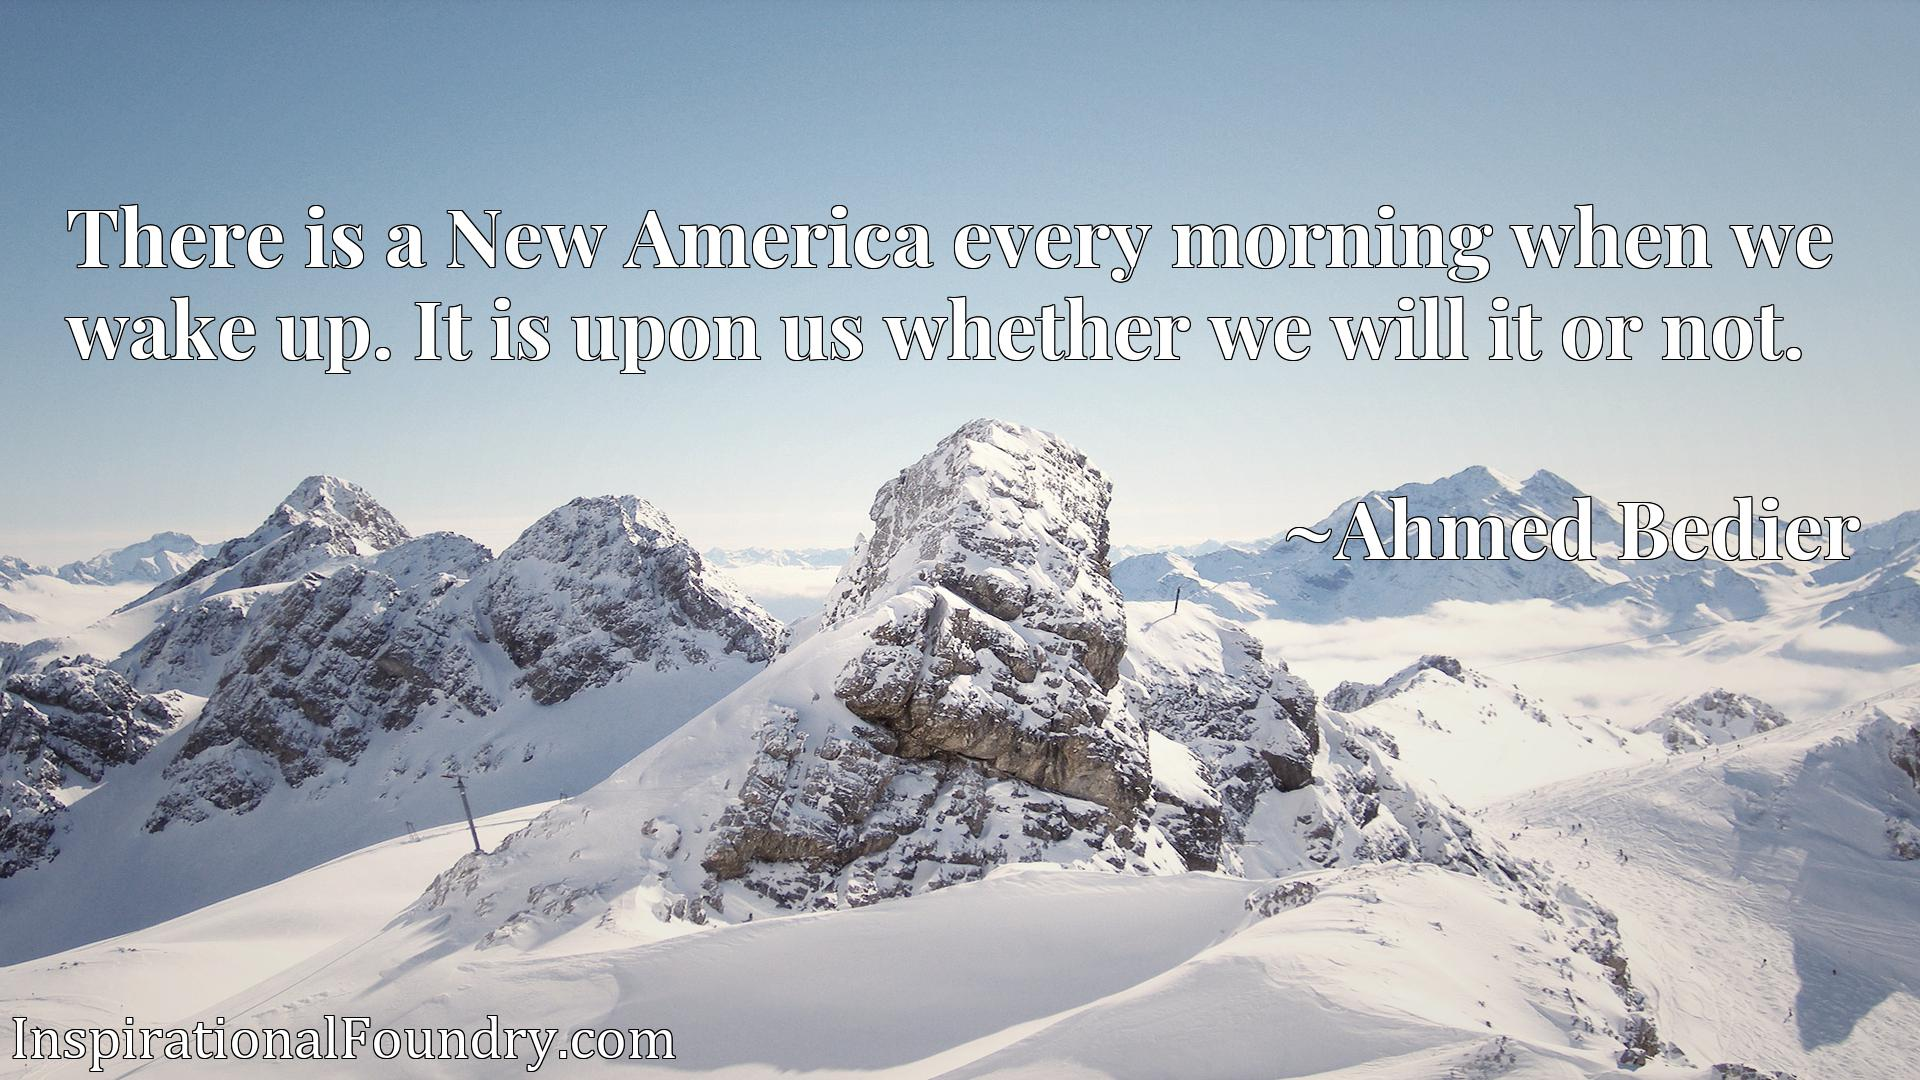 There is a New America every morning when we wake up. It is upon us whether we will it or not.